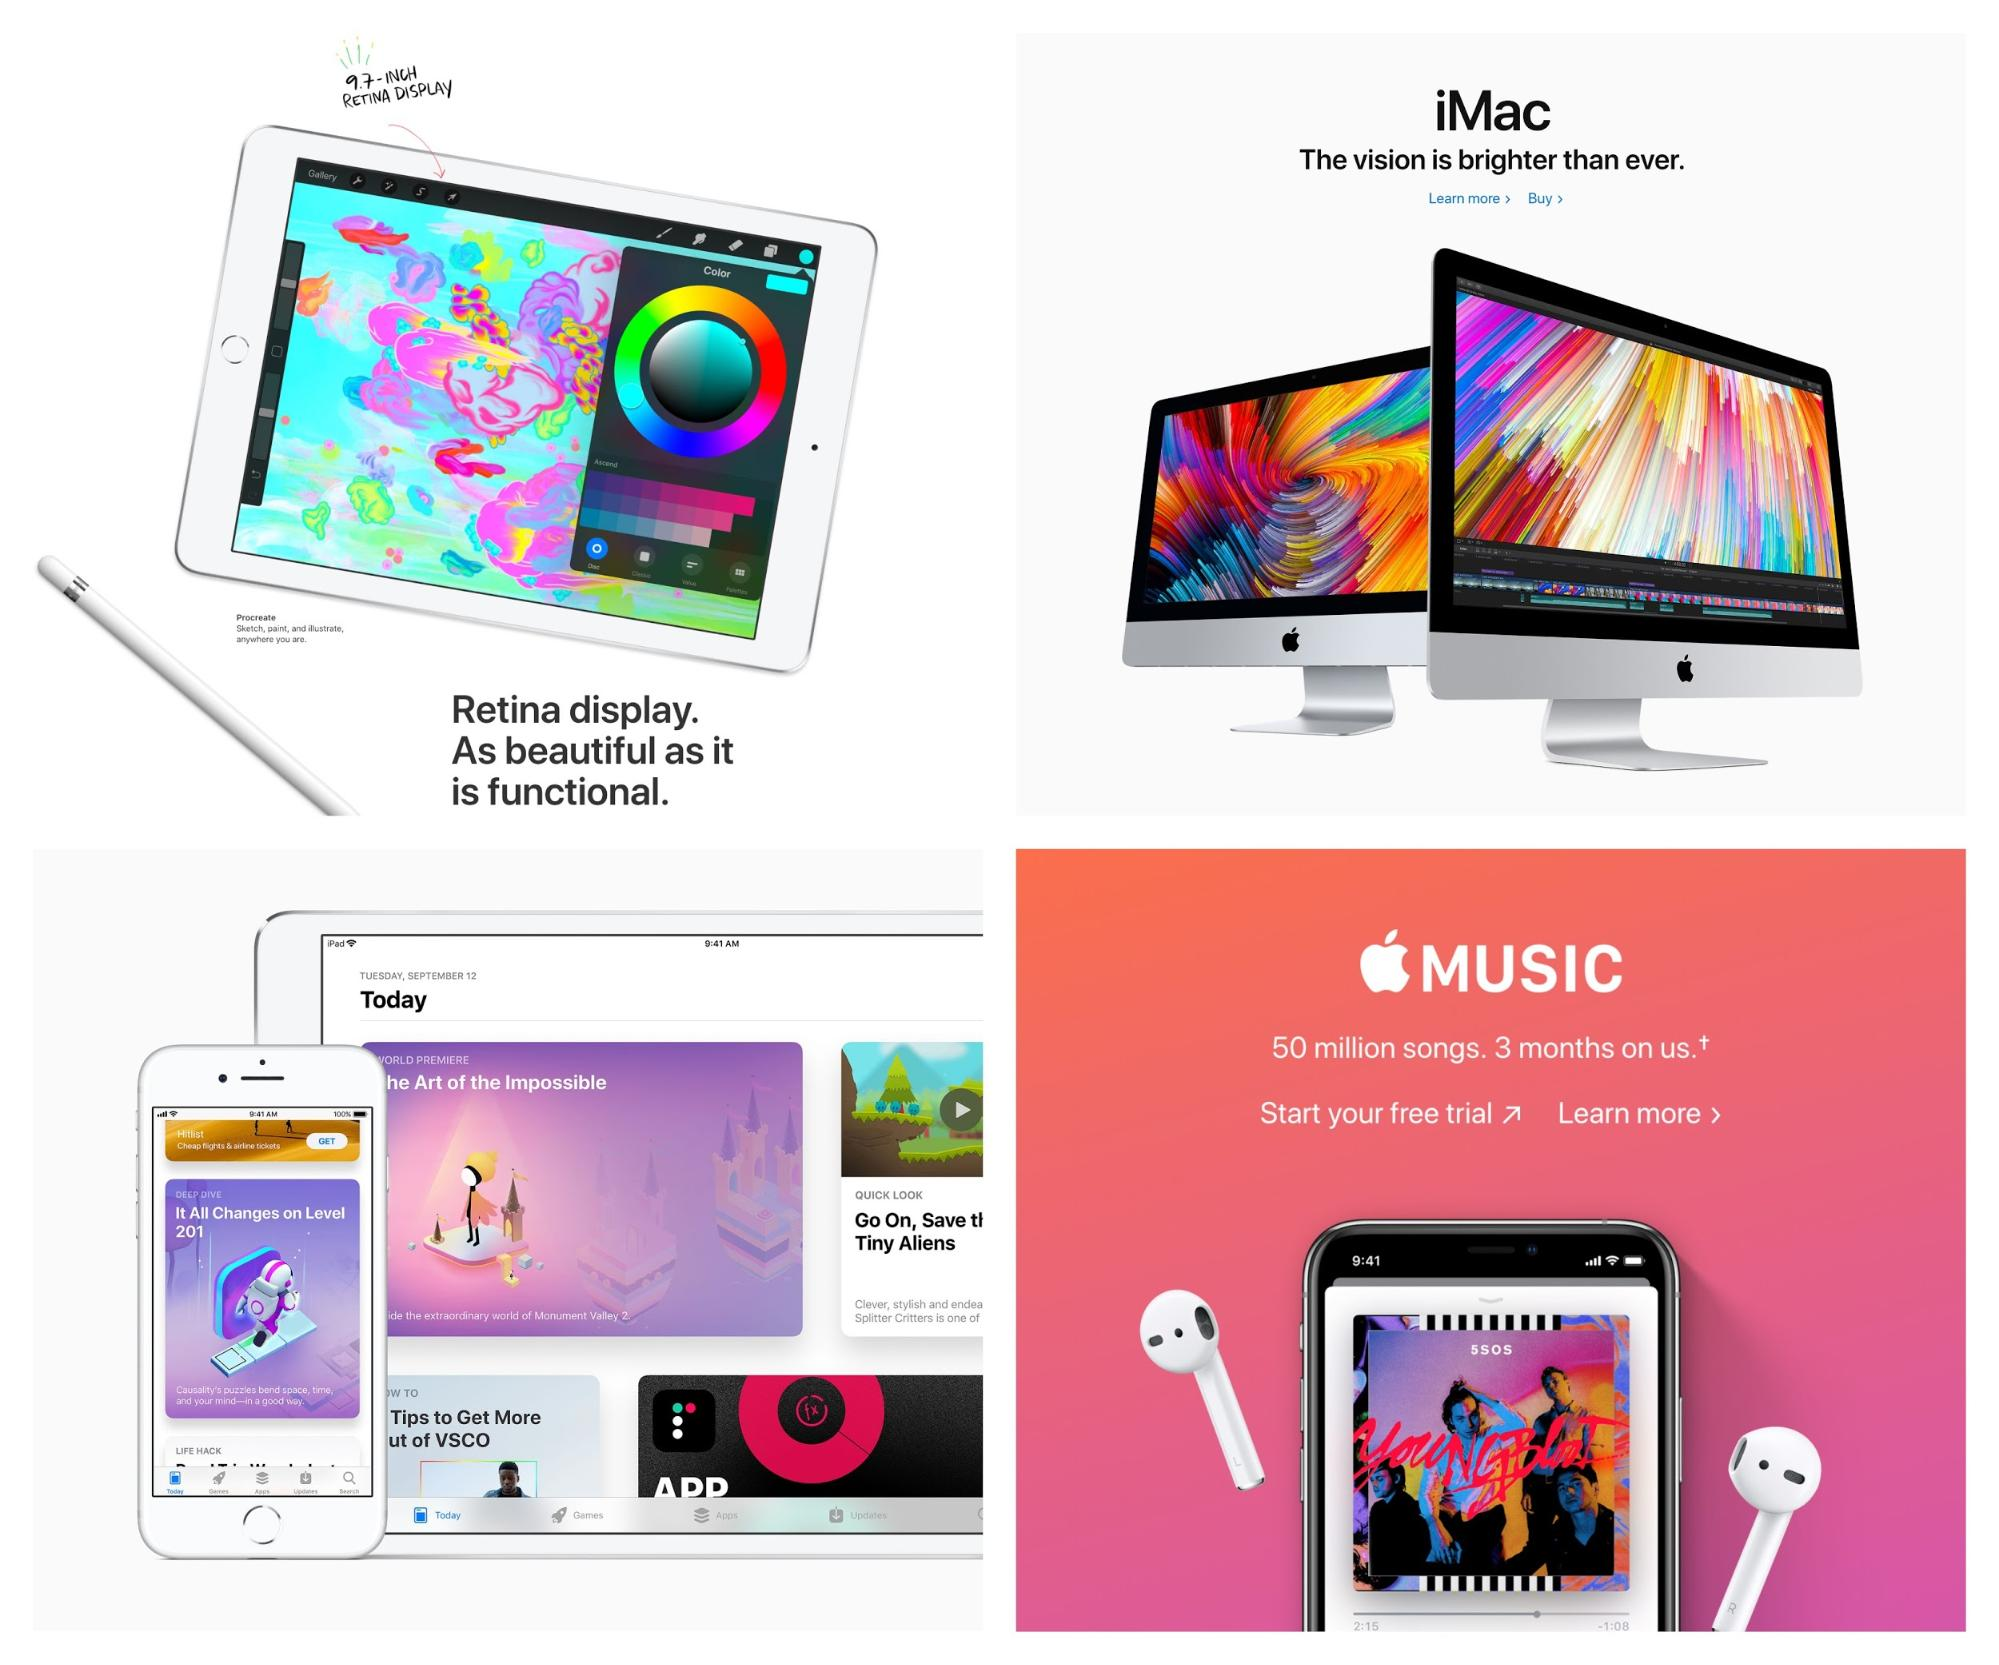 Graphic Design Trends 2019 - Vivid Colors Apple